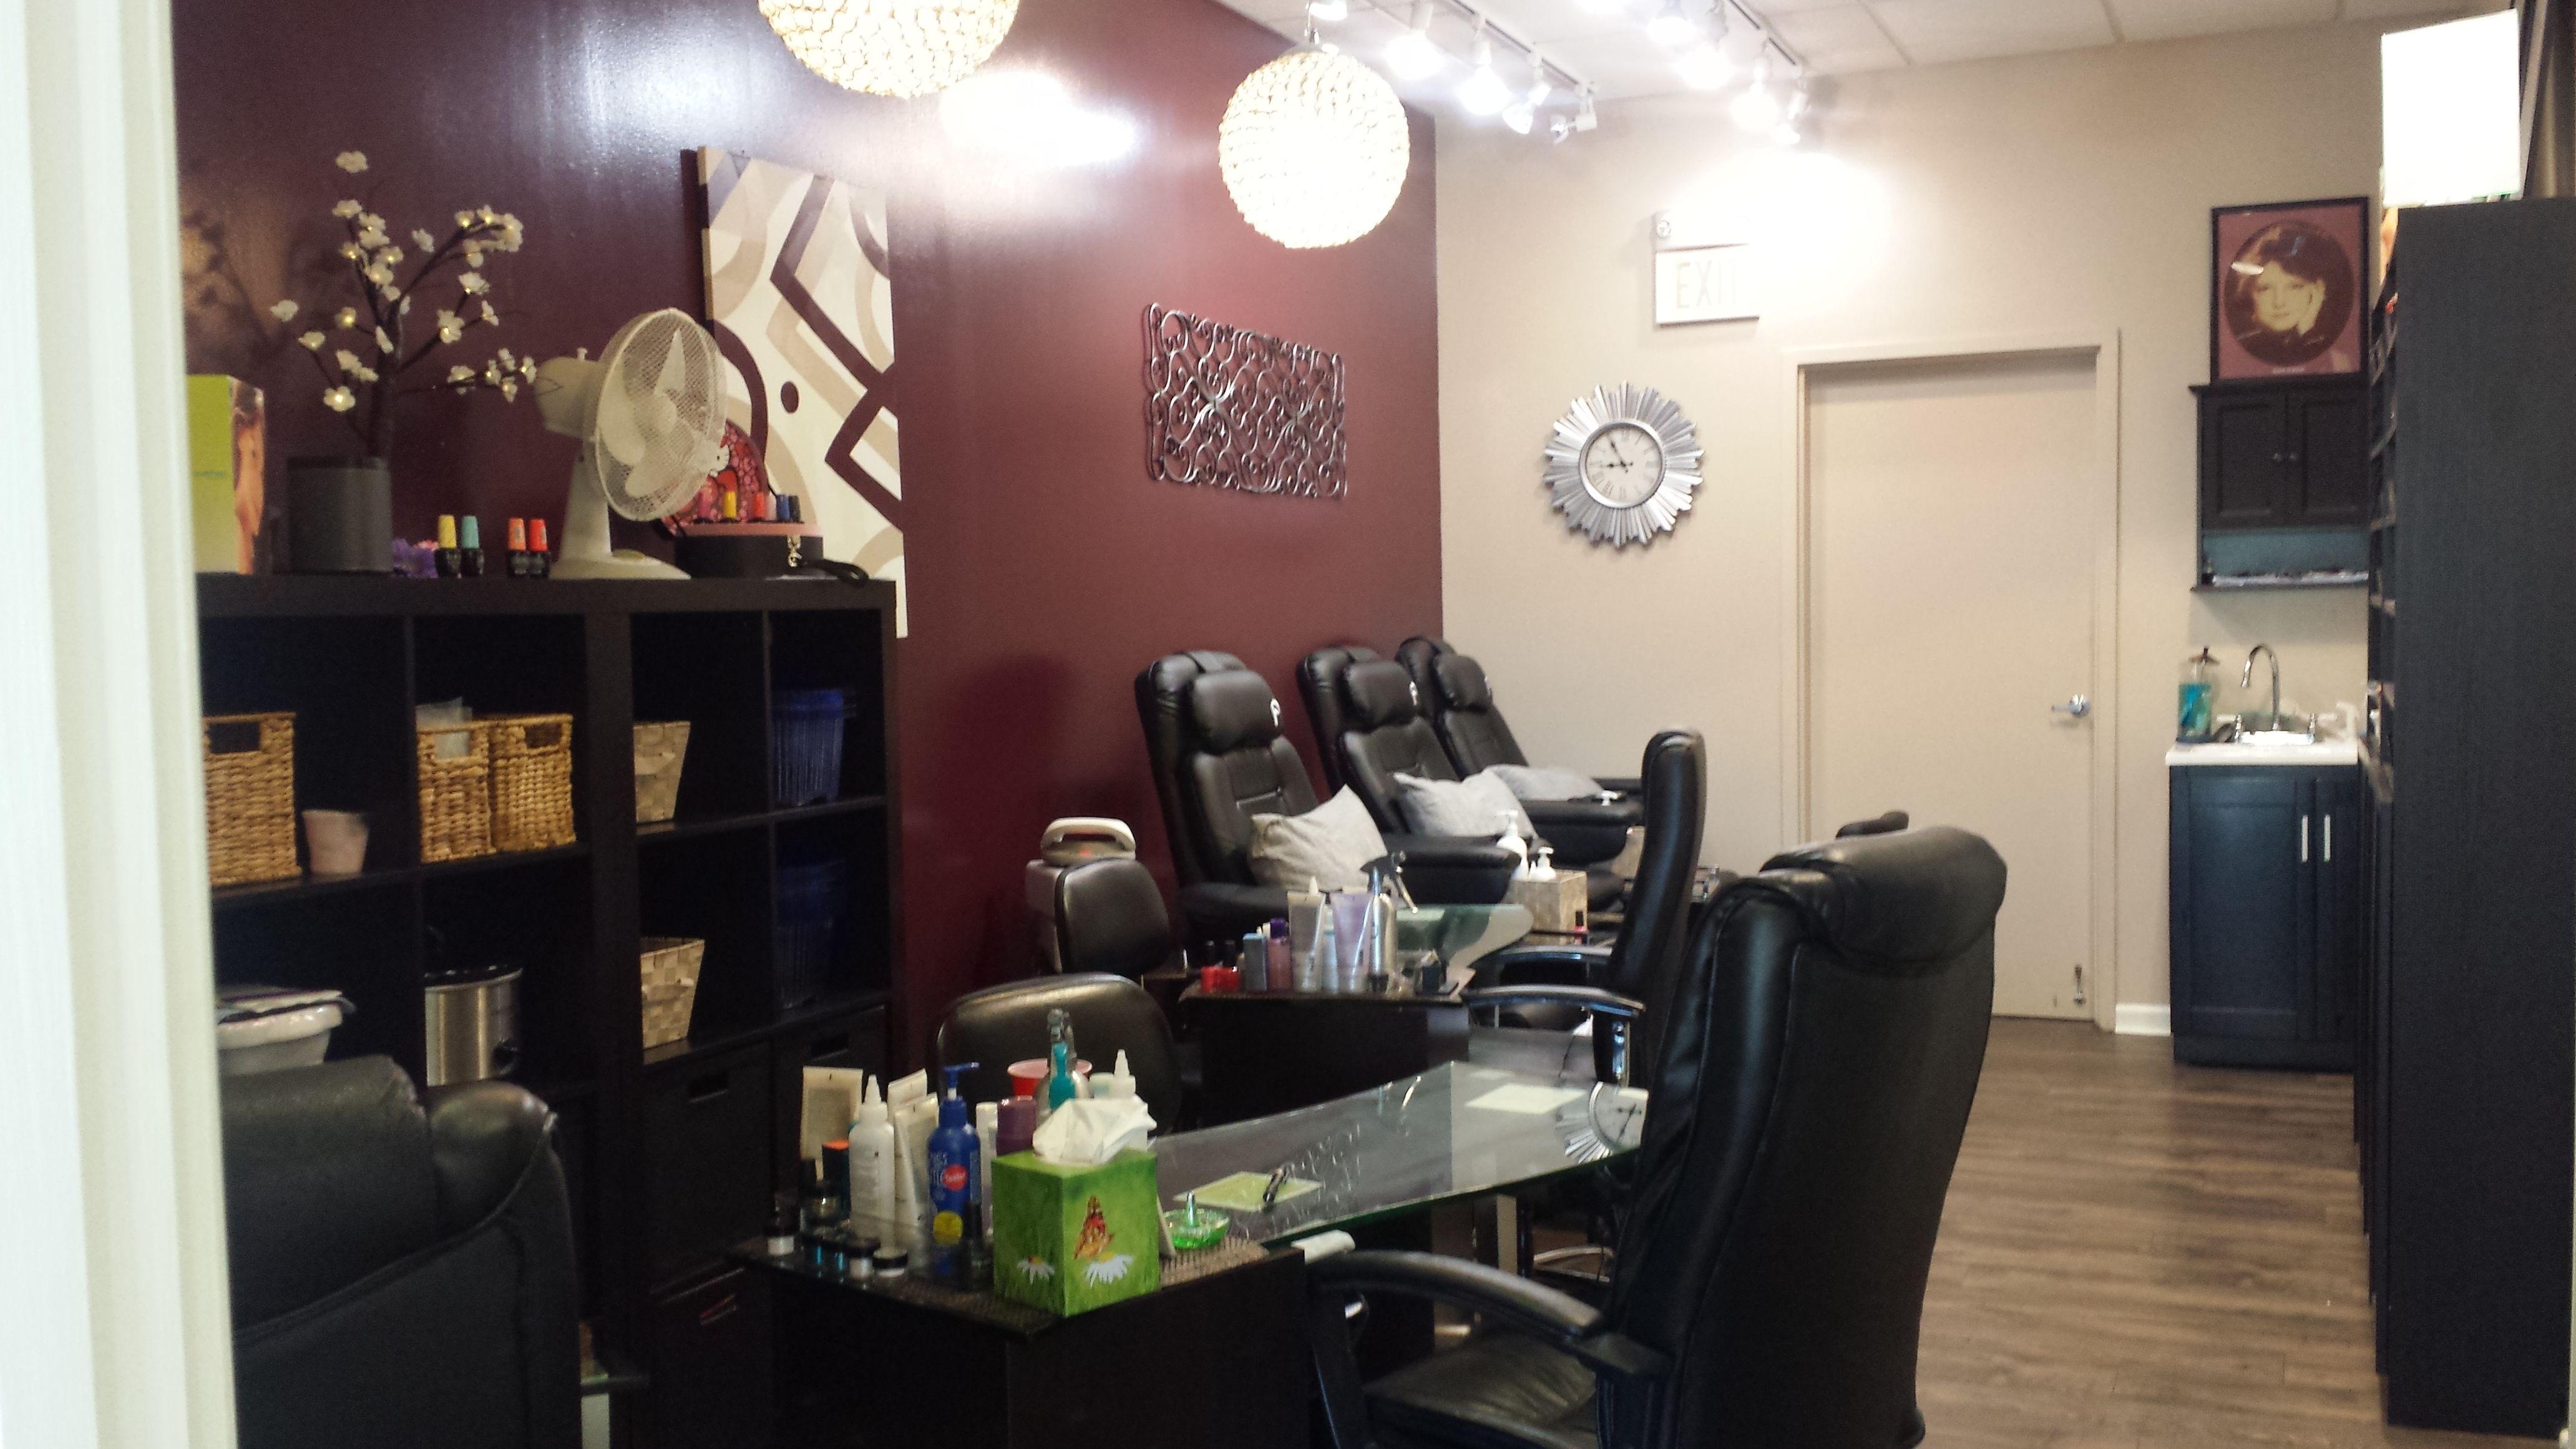 Merle norman cosmetics and spa in bloomington il 61704 - Bloomington hair salon ...